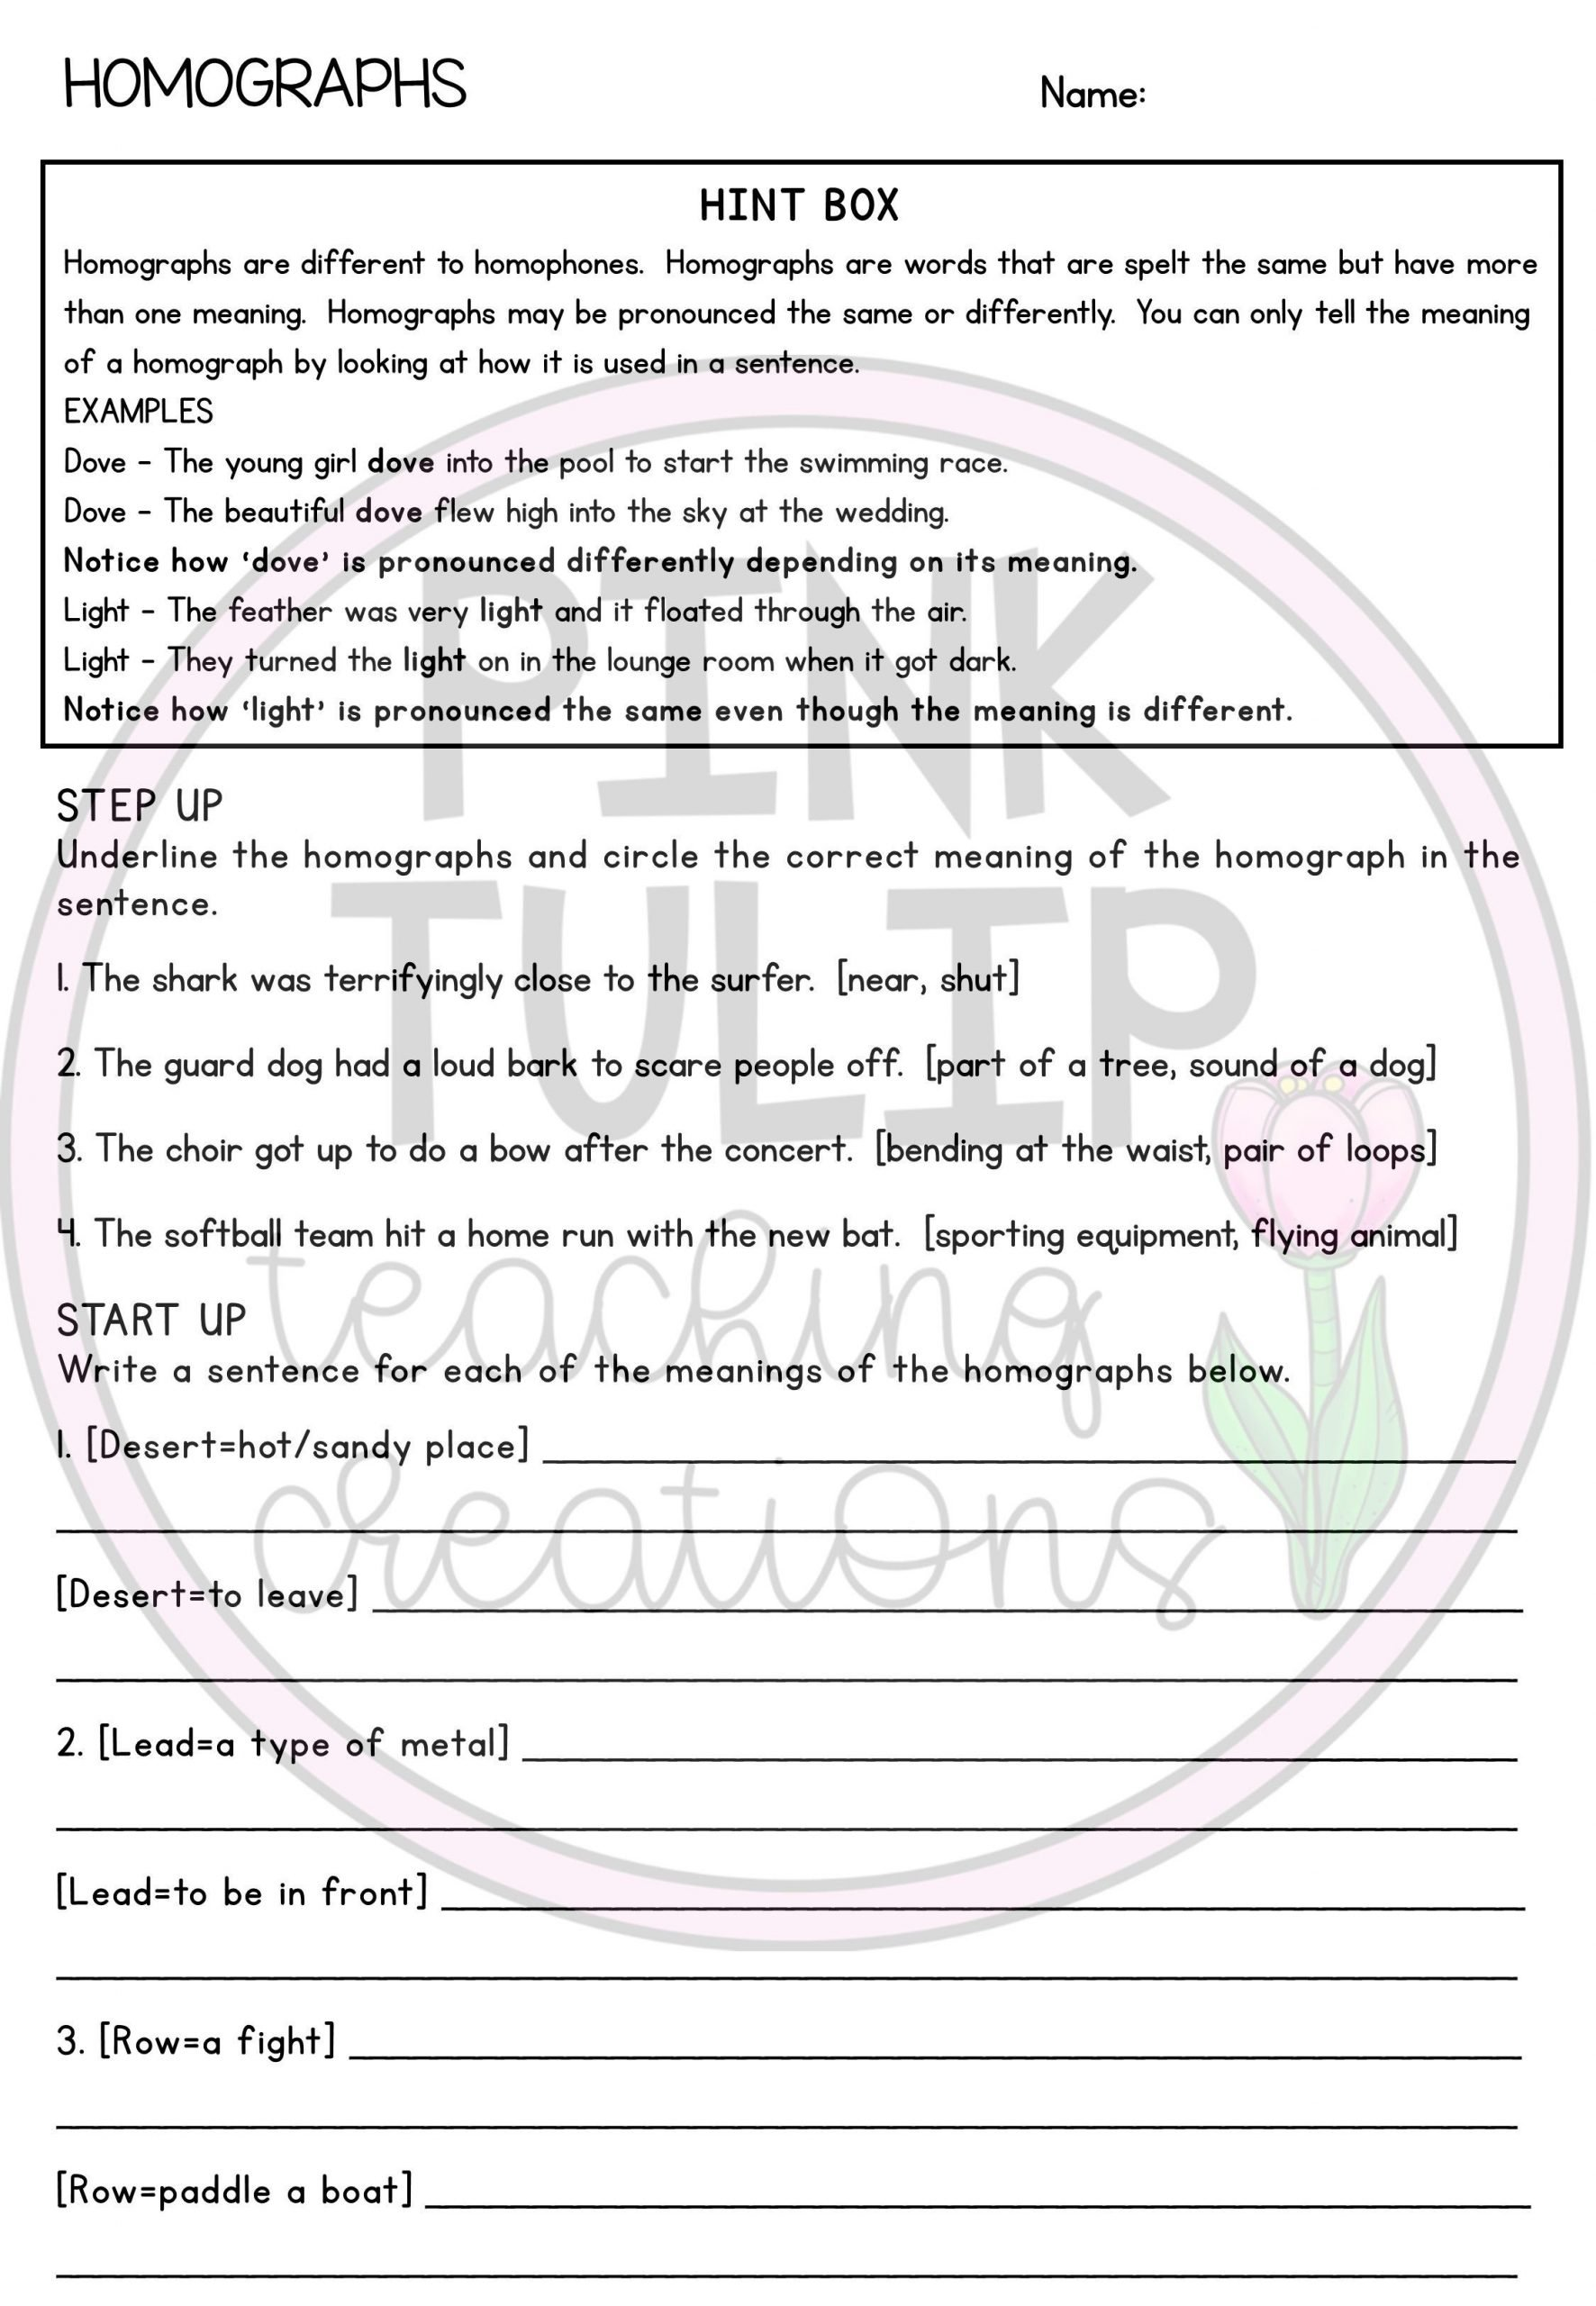 Homograph Worksheets 5th Grade Homographs Worksheet